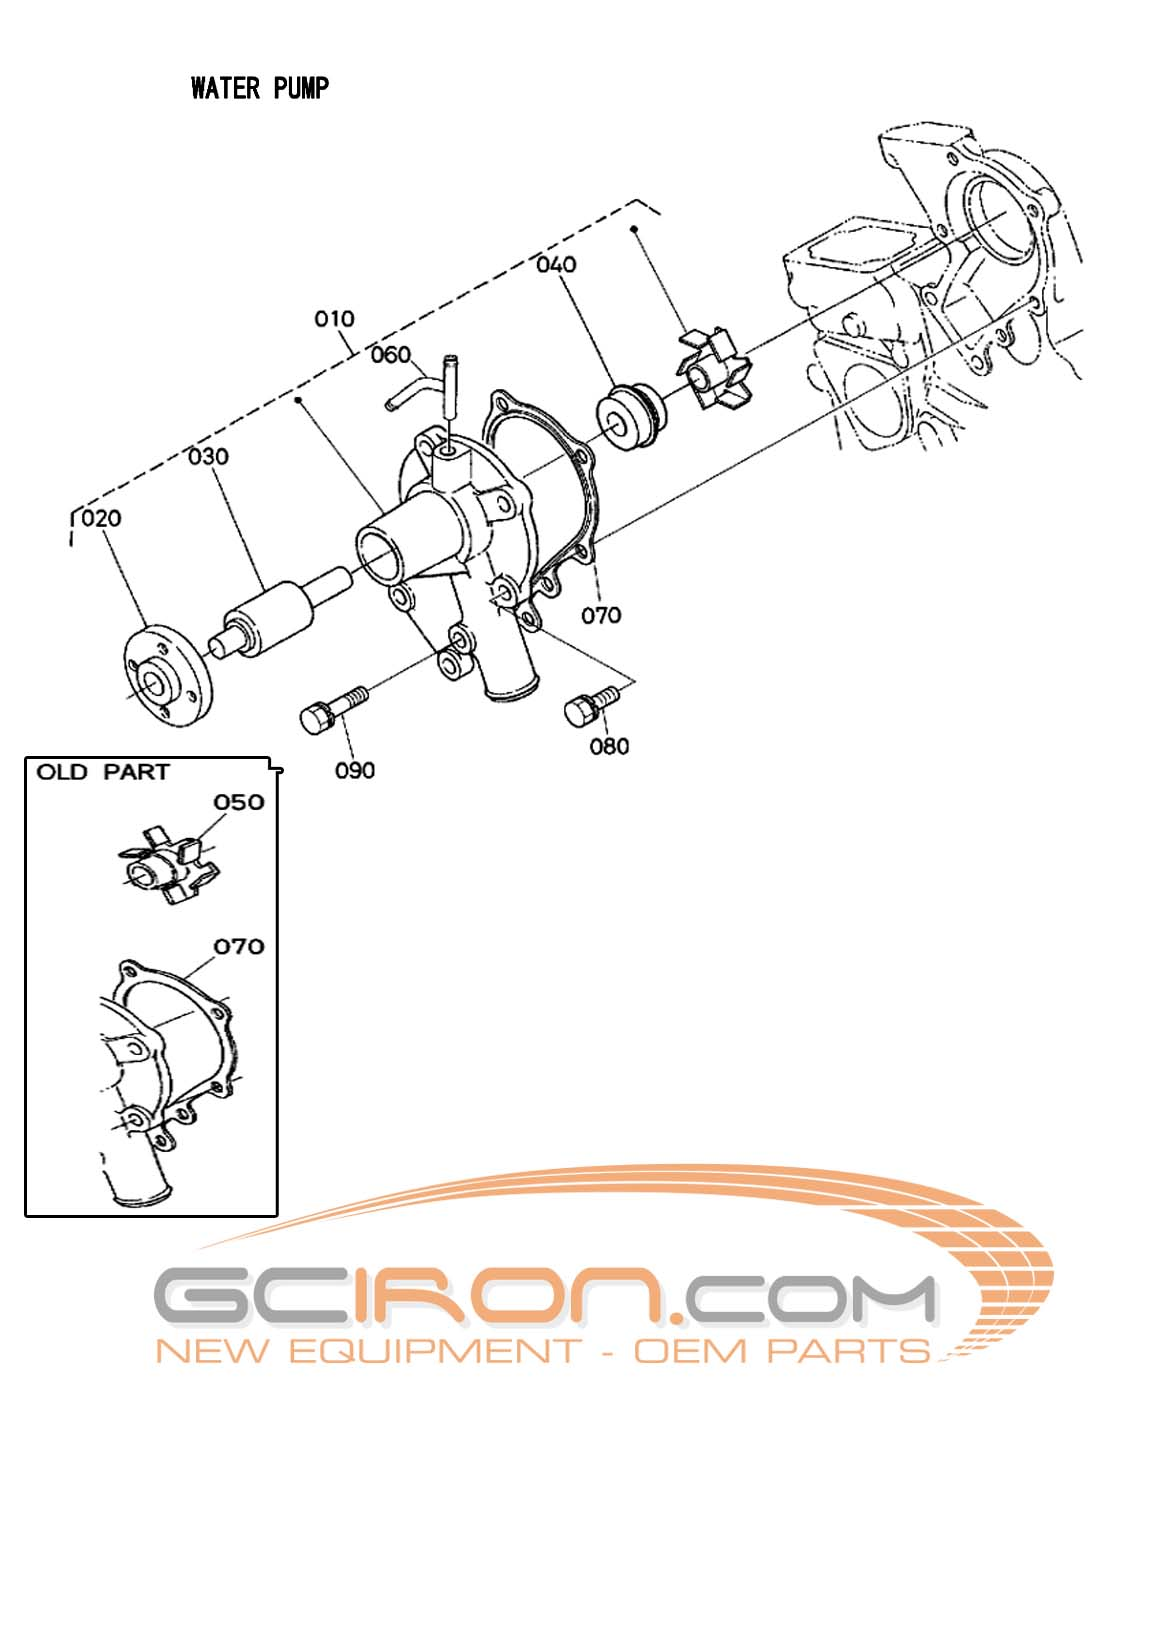 kubota wg750 parts diagram